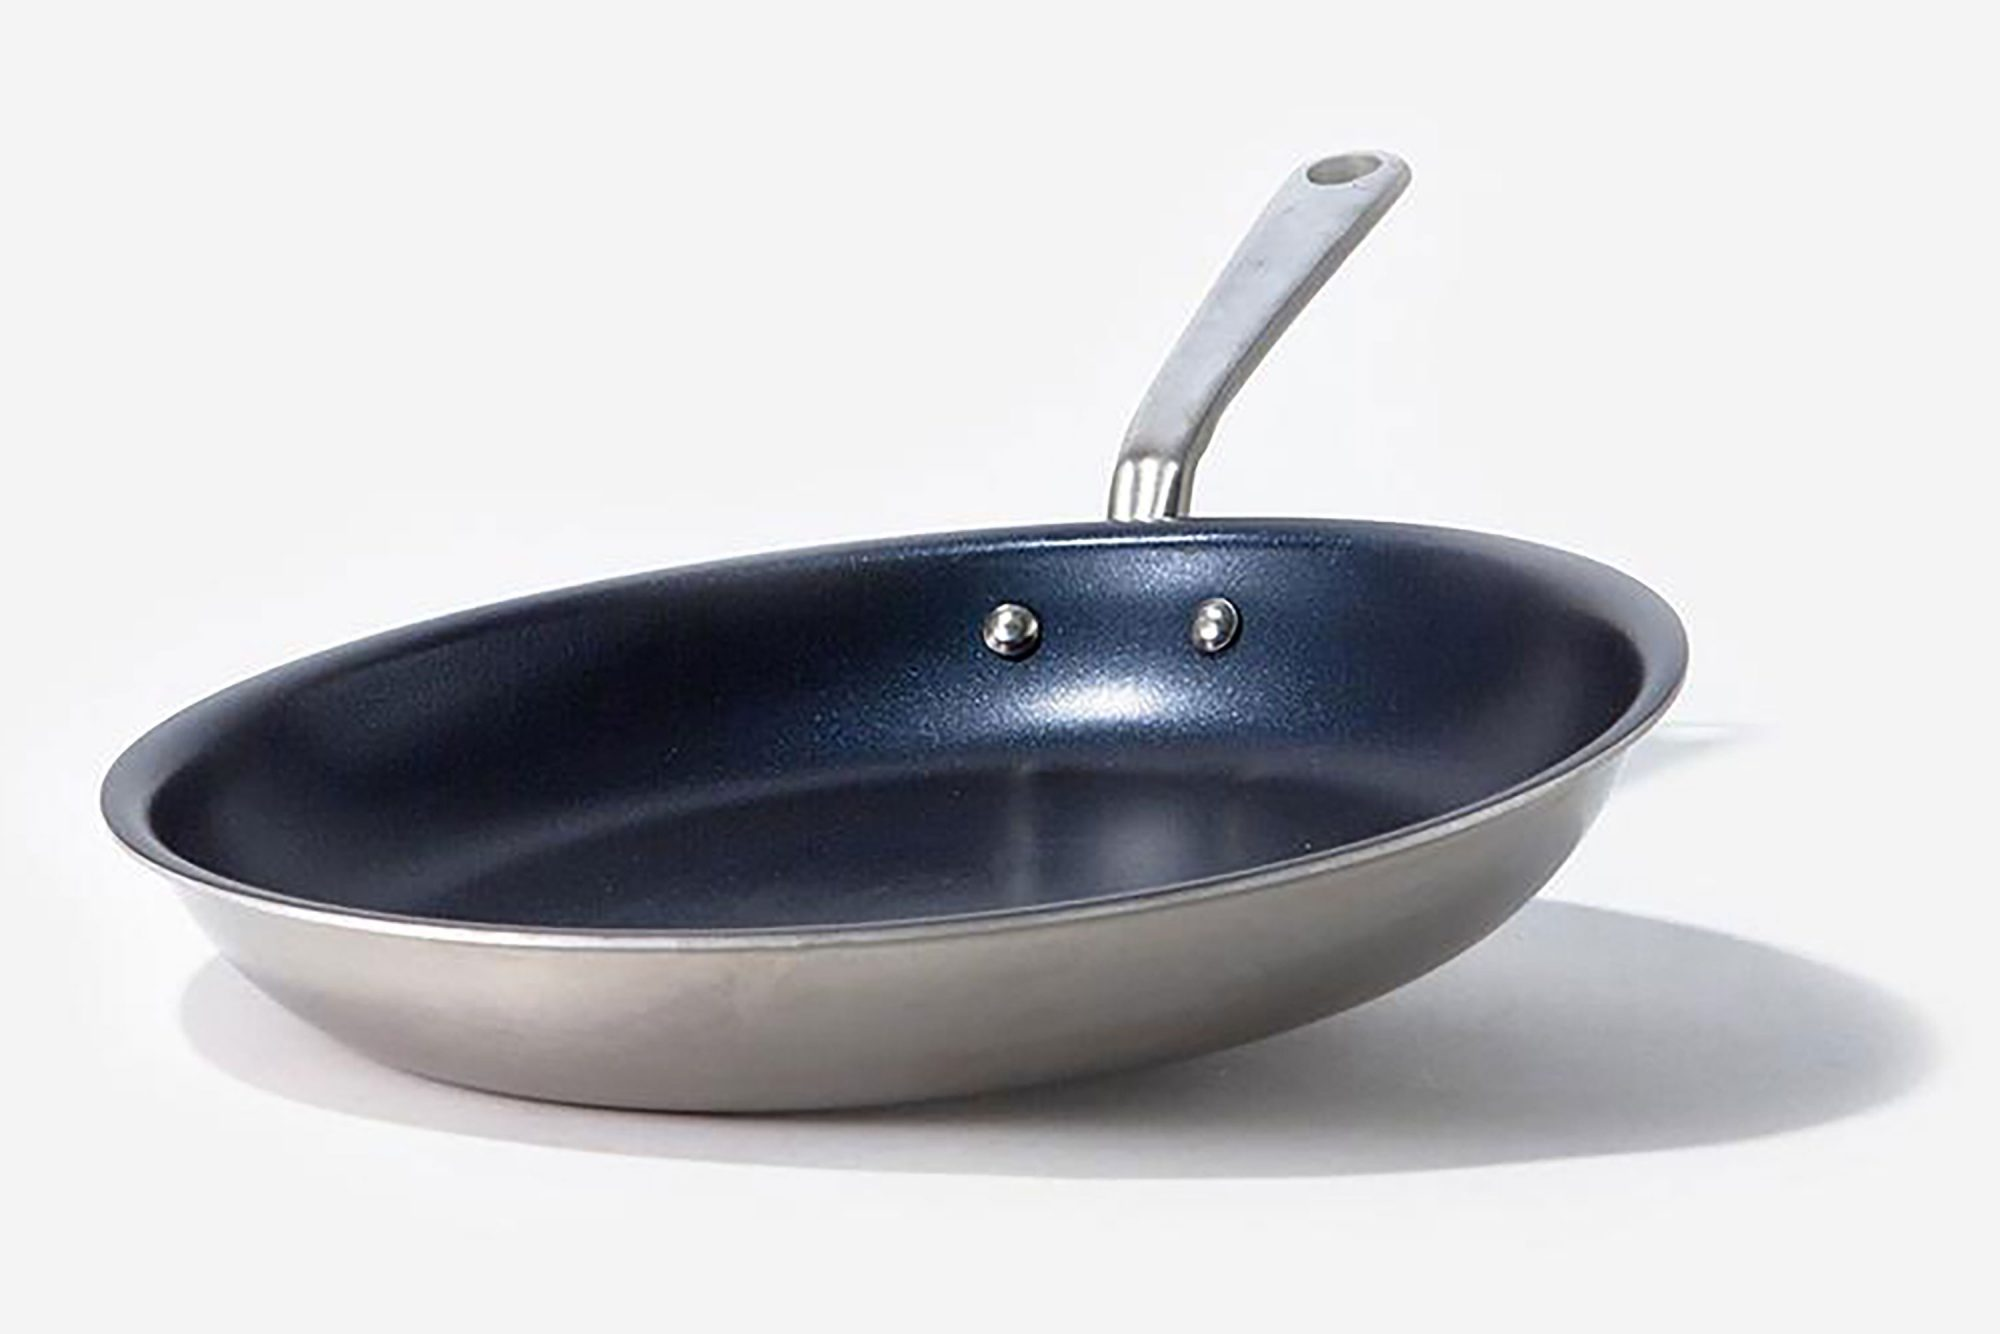 Made In Cookware Nonstick Skillet